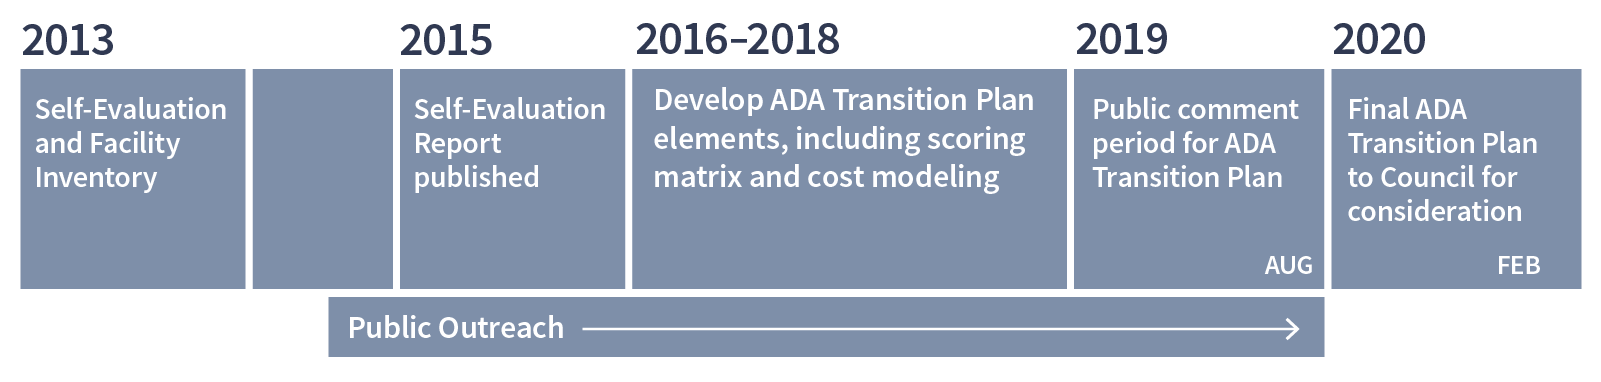 an image of a project timeline for the ADA transition plan. It runs from 2013 to 2020.